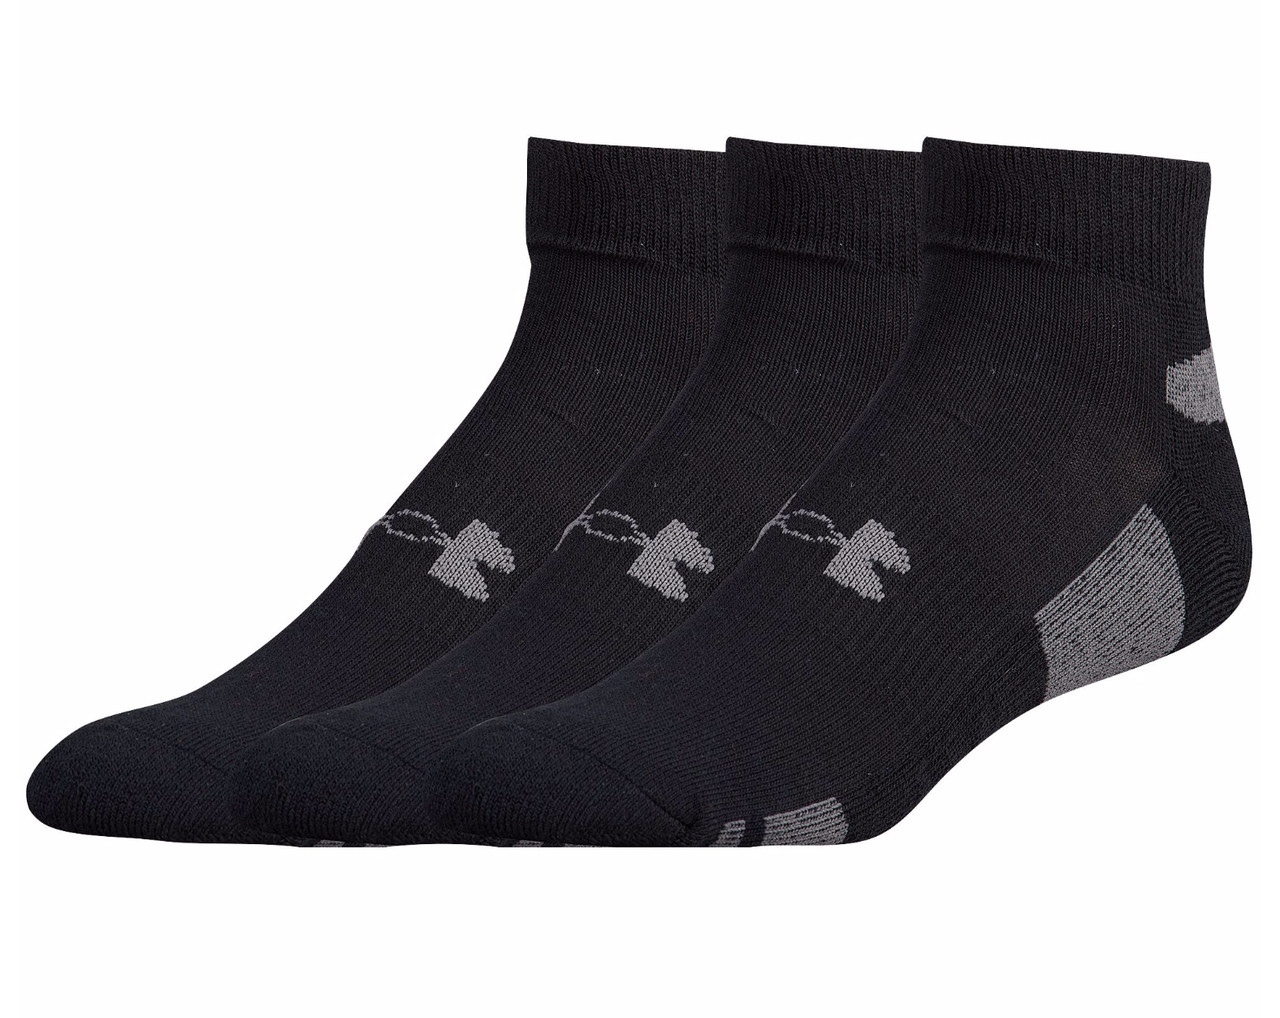 38cd5cbed Under Armour Men's HeatGear Low Cut 3-Pack Socks | Free Shipping on All  Orders